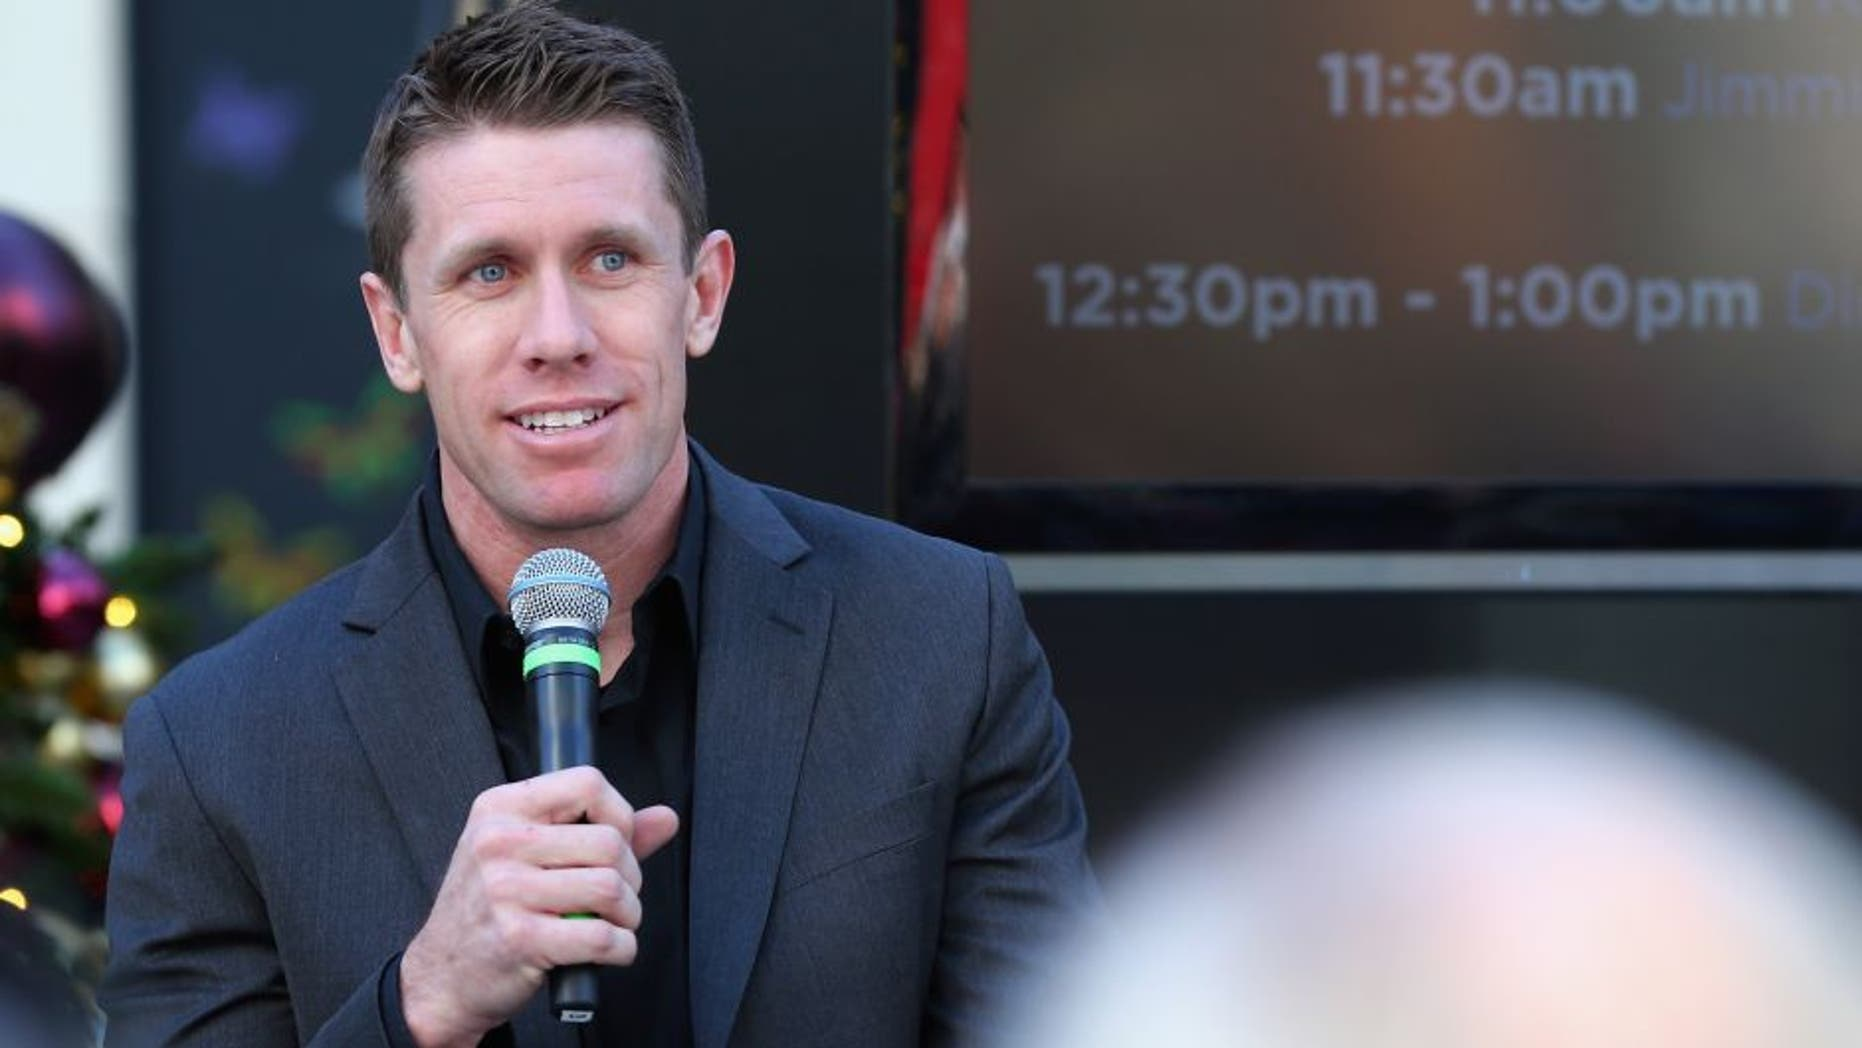 LAS VEGAS, NV - DECEMBER 02: NASCAR Sprint Cup Series driver Carl Edwards participates in a Q&A session on the main stage at The LINQ Hotel & Casino on December 2, 2015 in Las Vegas, Nevada. (Photo by Sarah Crabill/NASCAR via Getty Images)